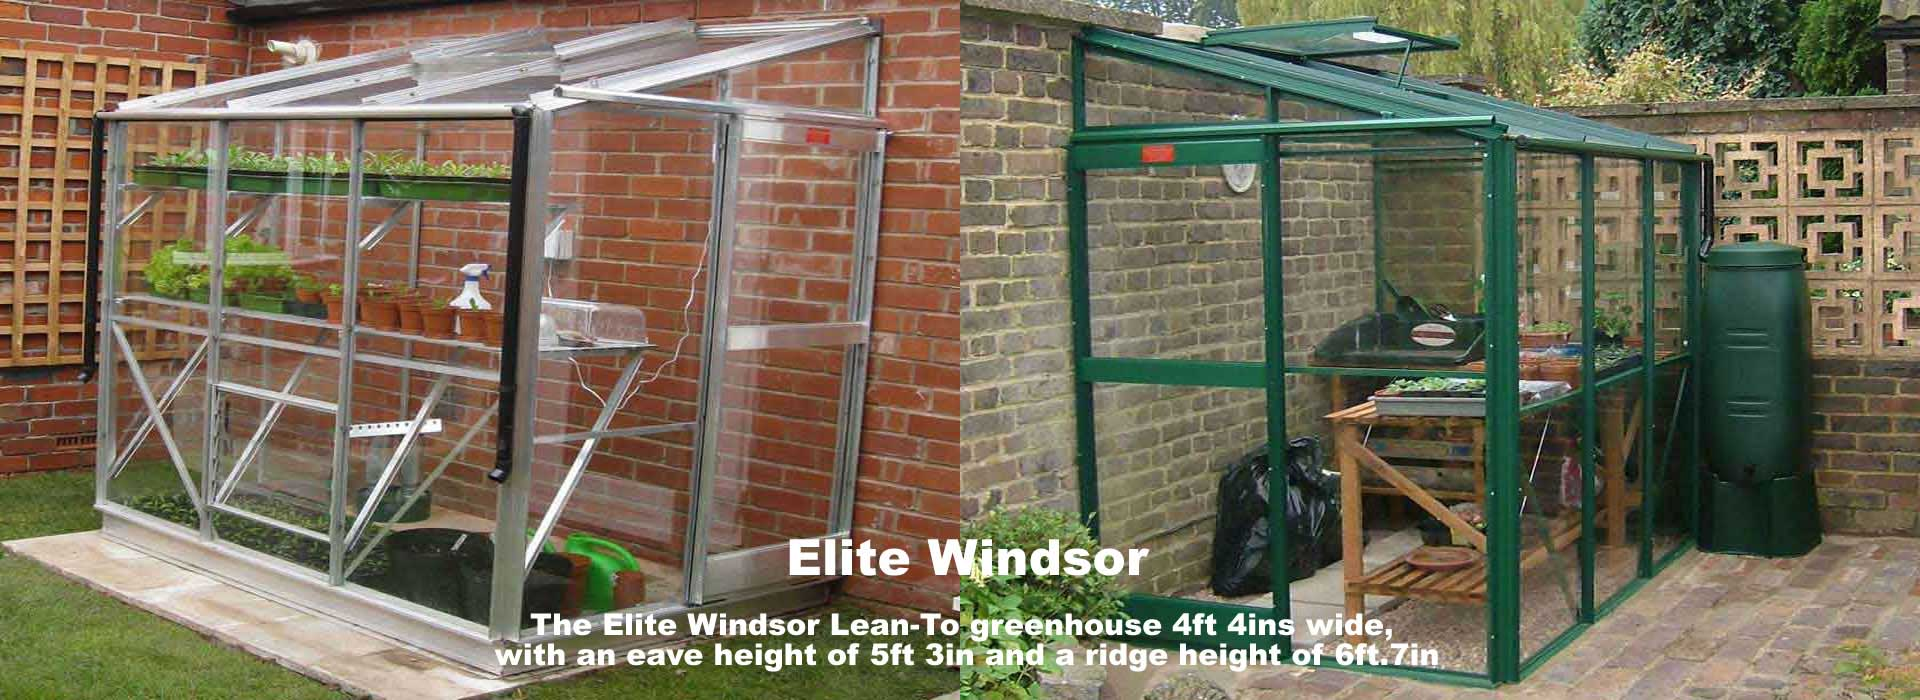 Elite Windsor Lean-To Greenhouses